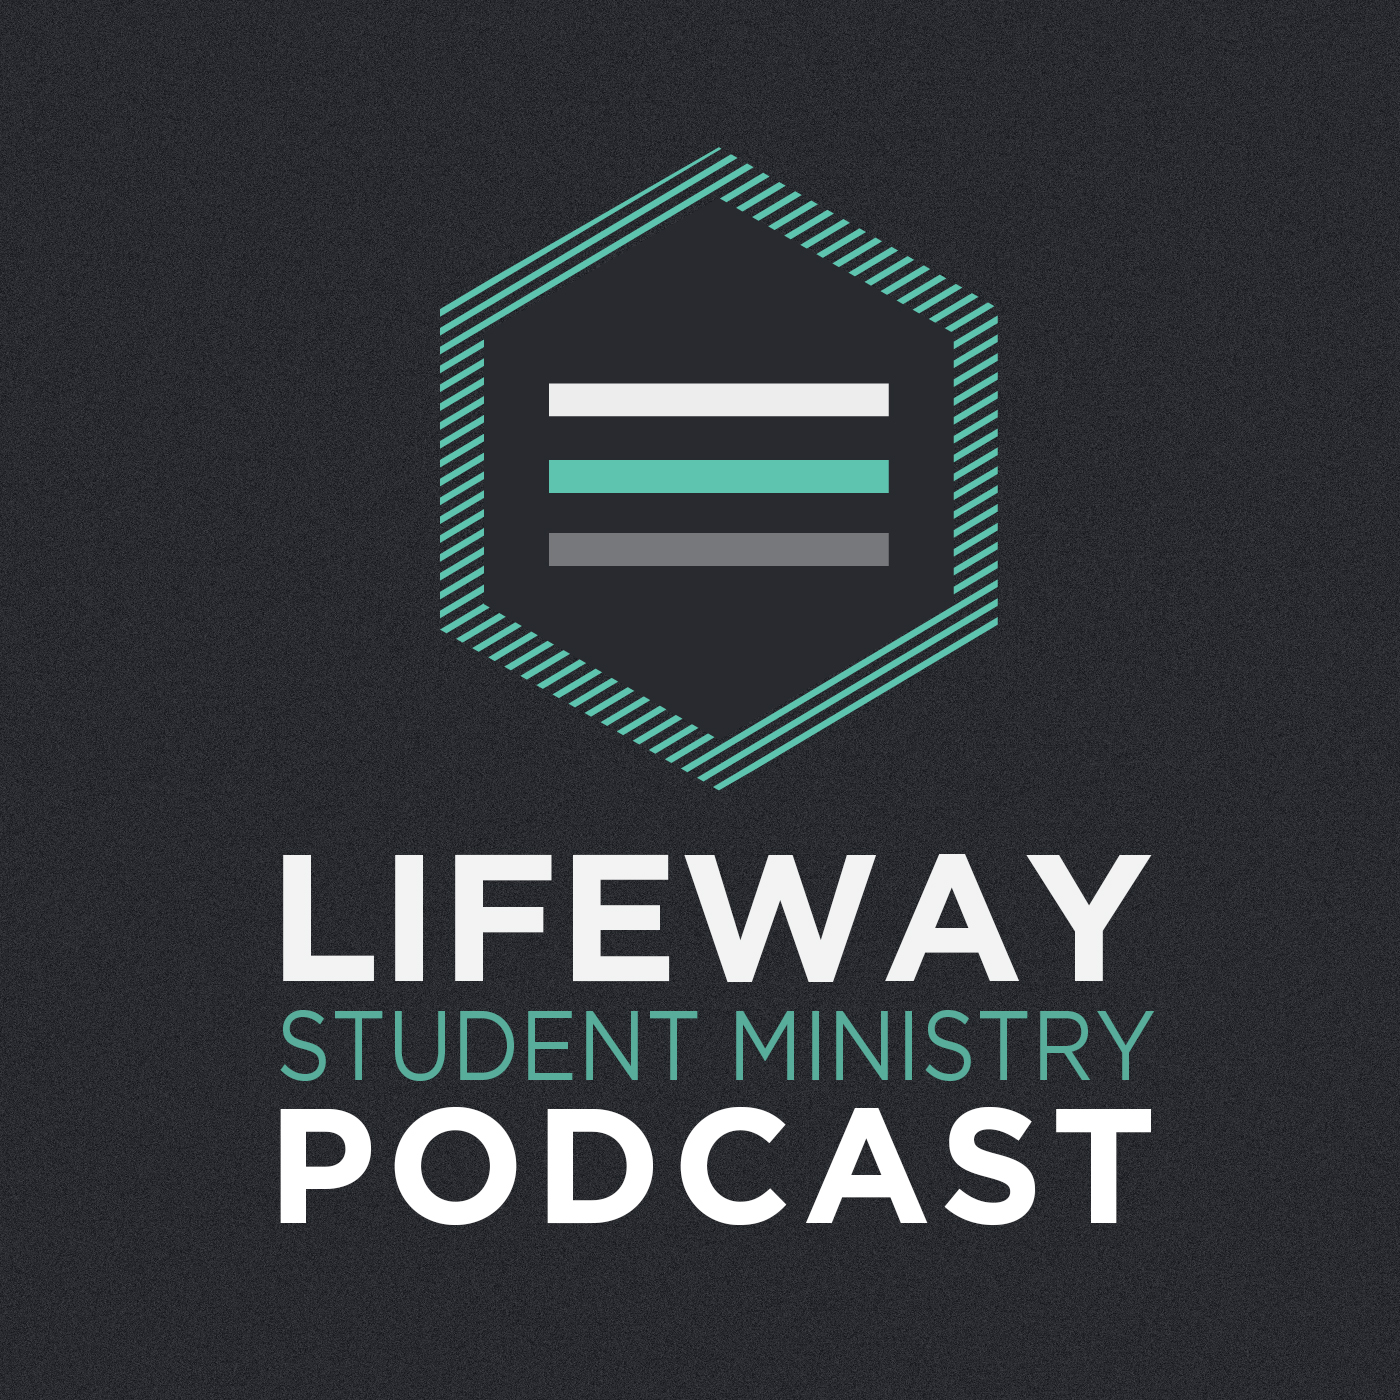 LifeWay Student Ministry Podcast